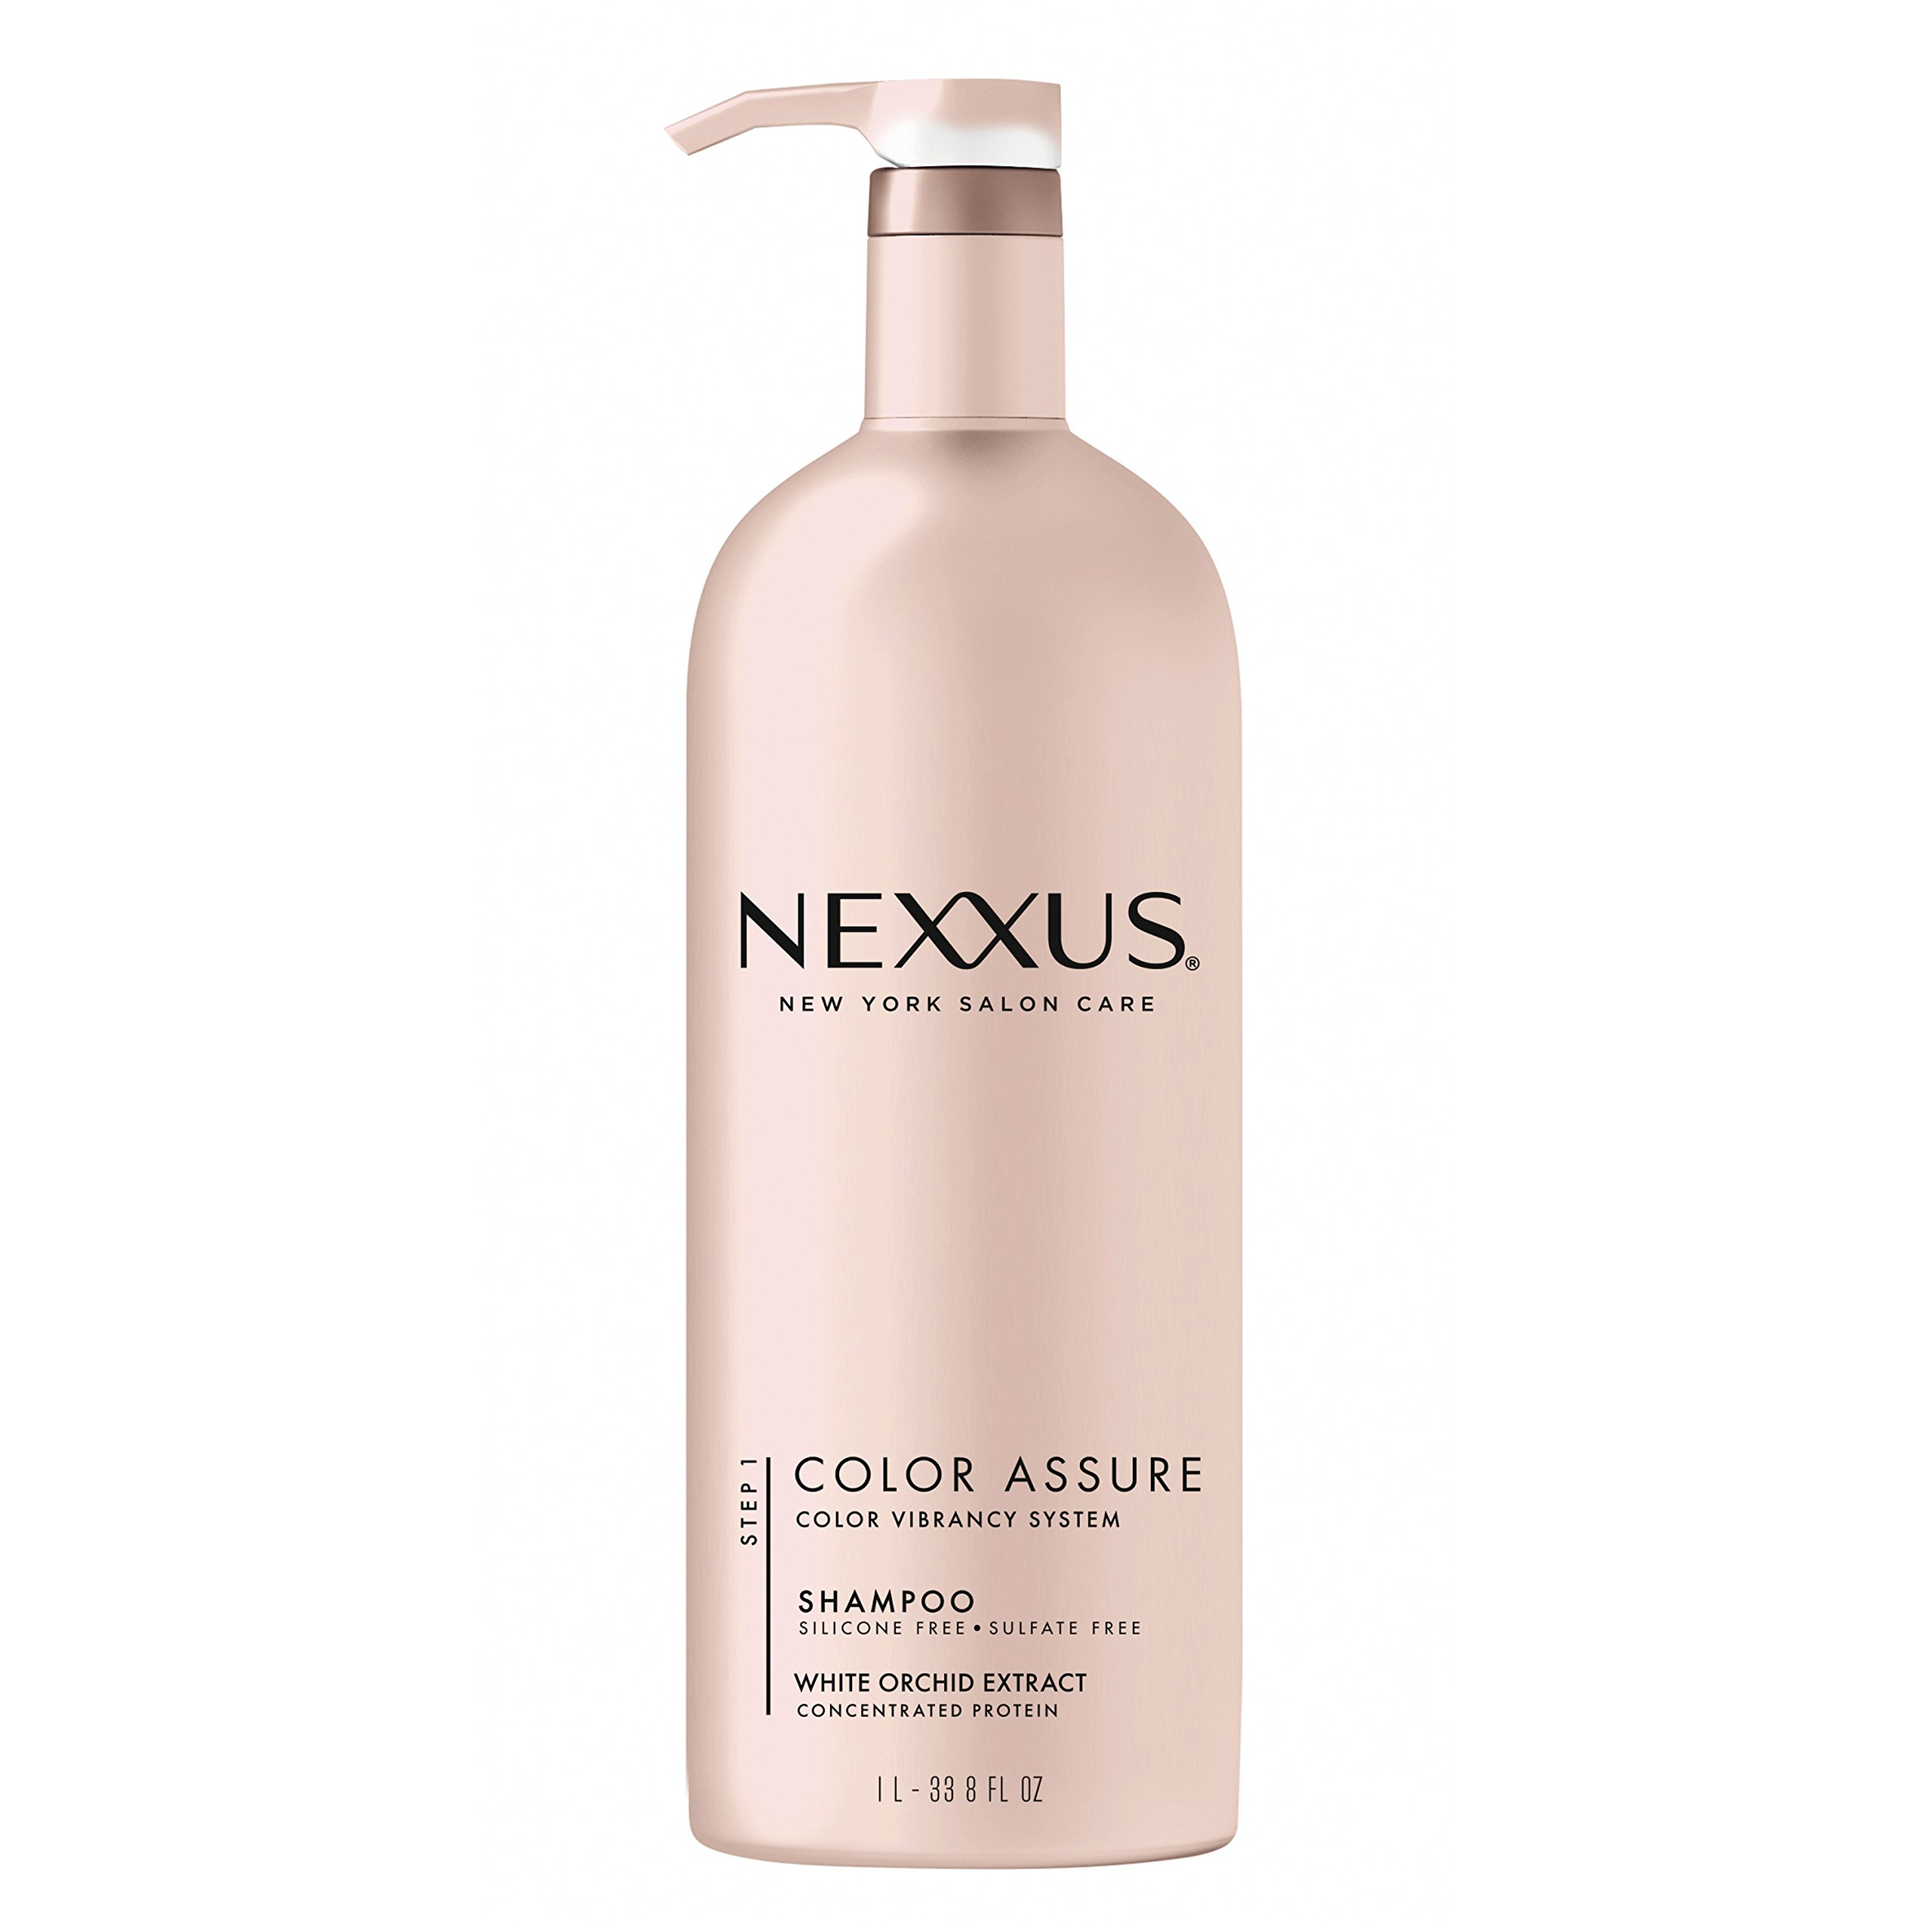 Nexxus Color Assure Shampoo, for Color Treated Hair, 33.8 oz